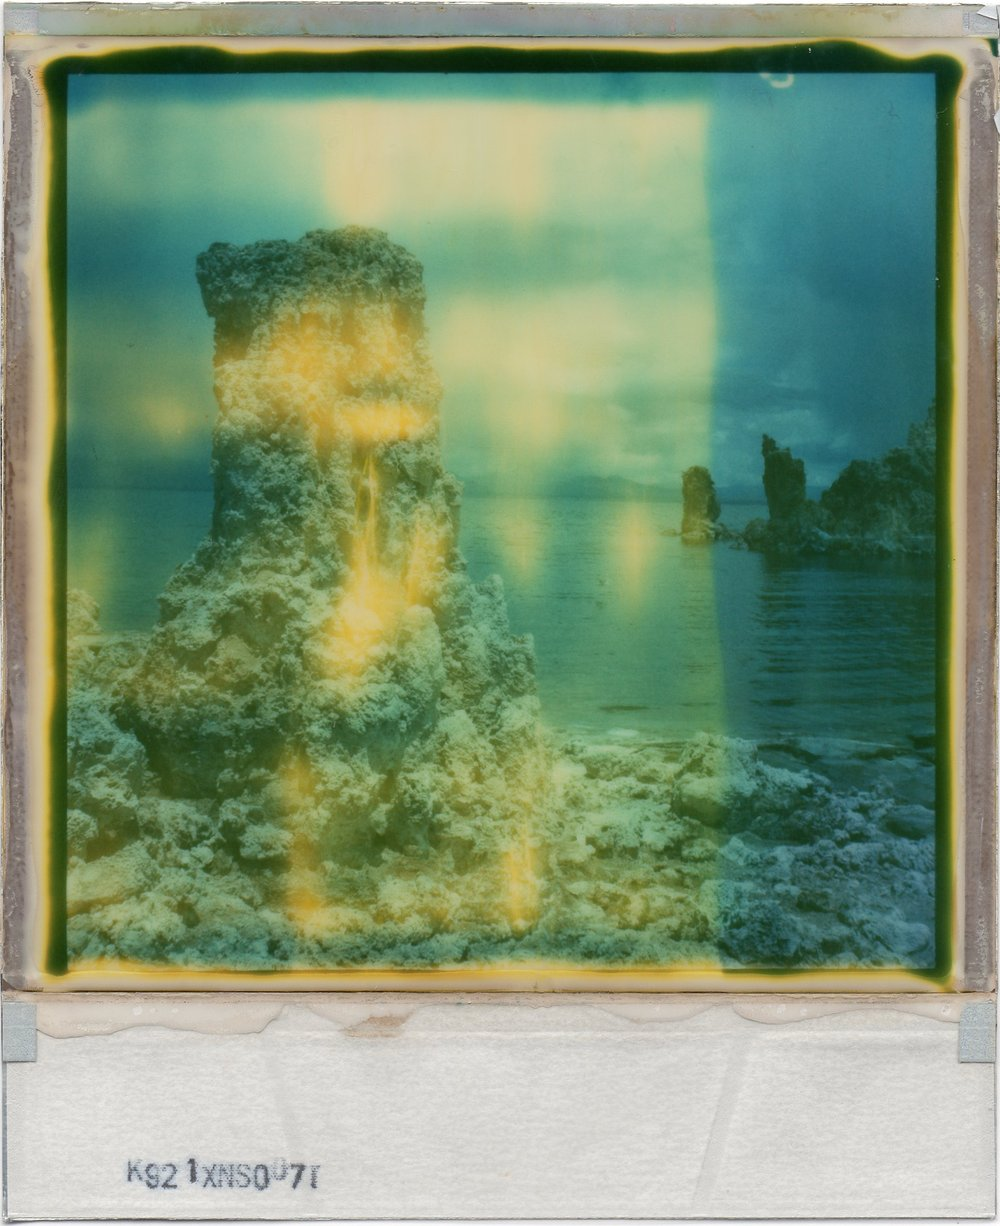 Mono Lake | Polaroid SX70 Sonar | Polaroid 70 (Expired) | Julia Beyer | @juliabeyer